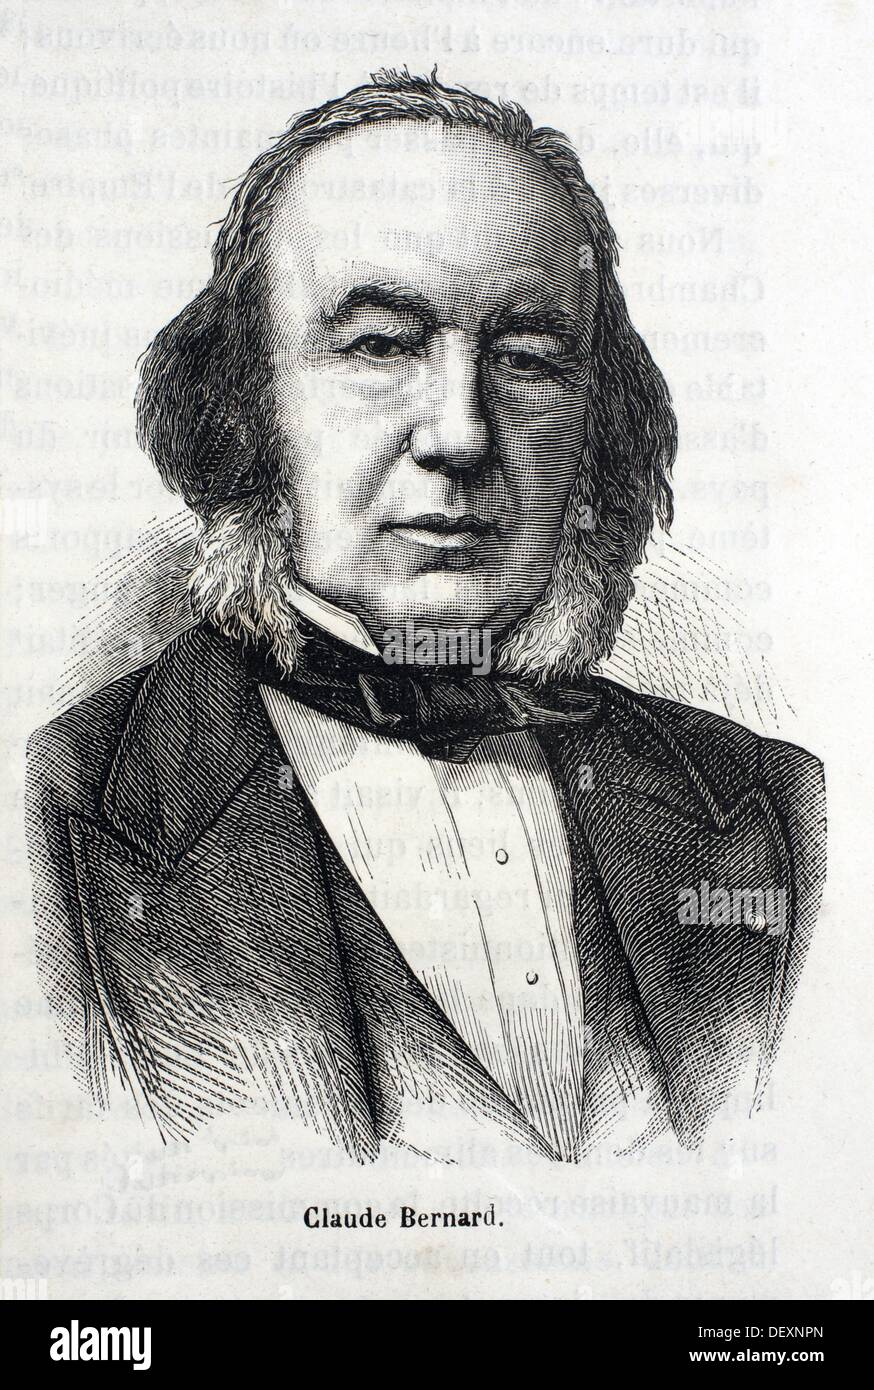 France, History, 19th Century, Claude Bernard July 12, 1813 - February 10, 1878 was a French physiologist Historian of science - Stock Image